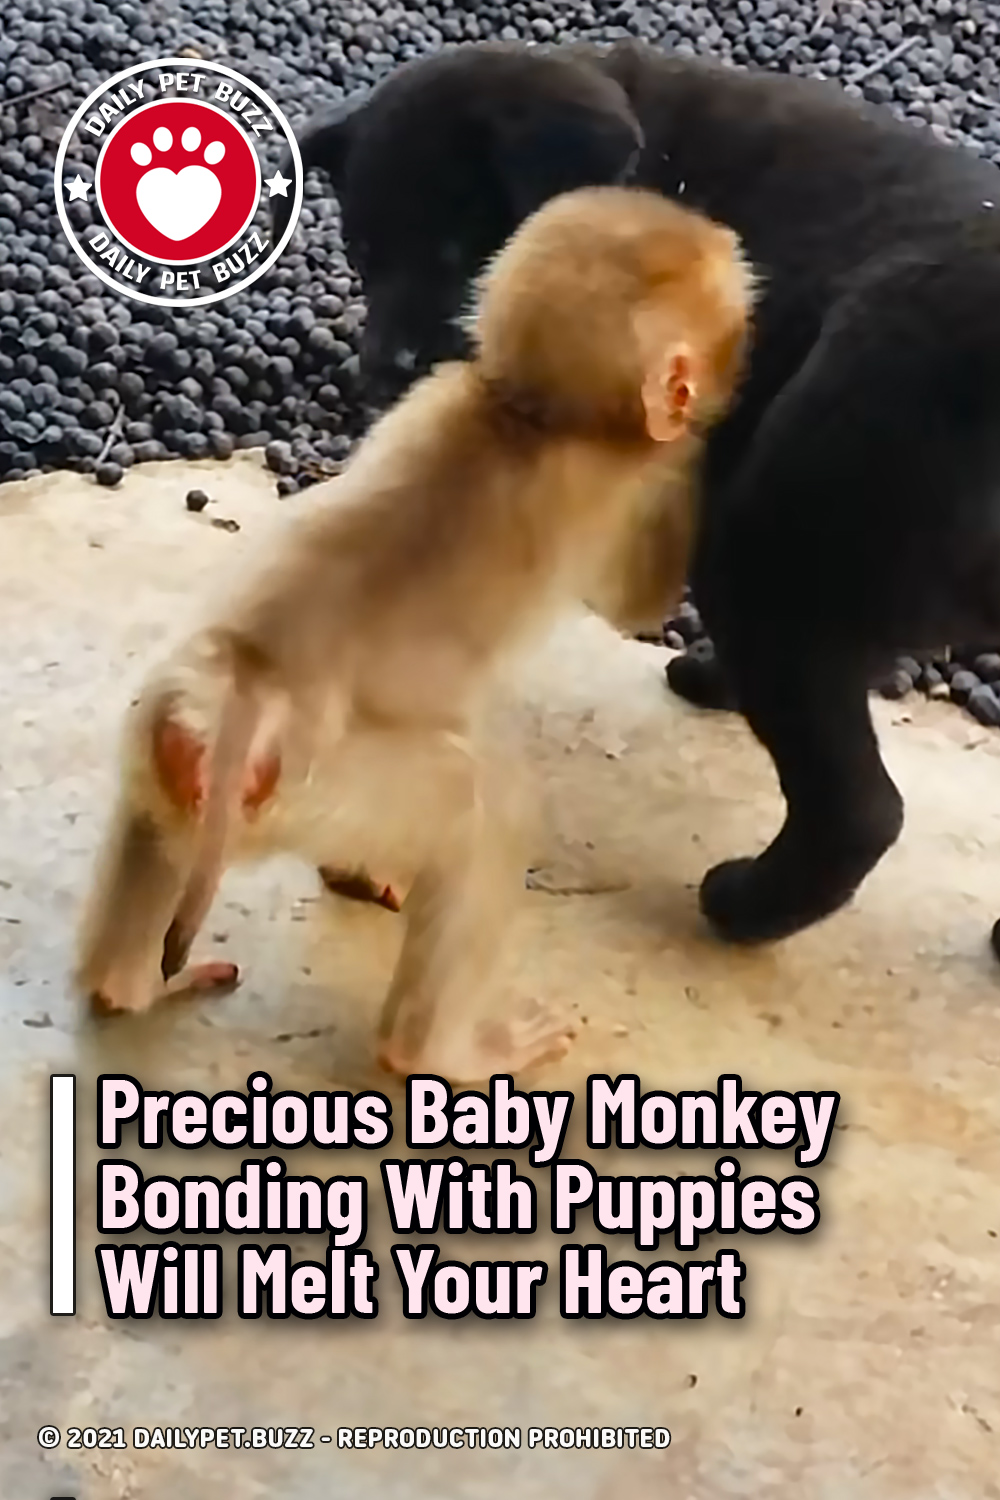 Precious Baby Monkey Bonding With Puppies Will Melt Your Heart